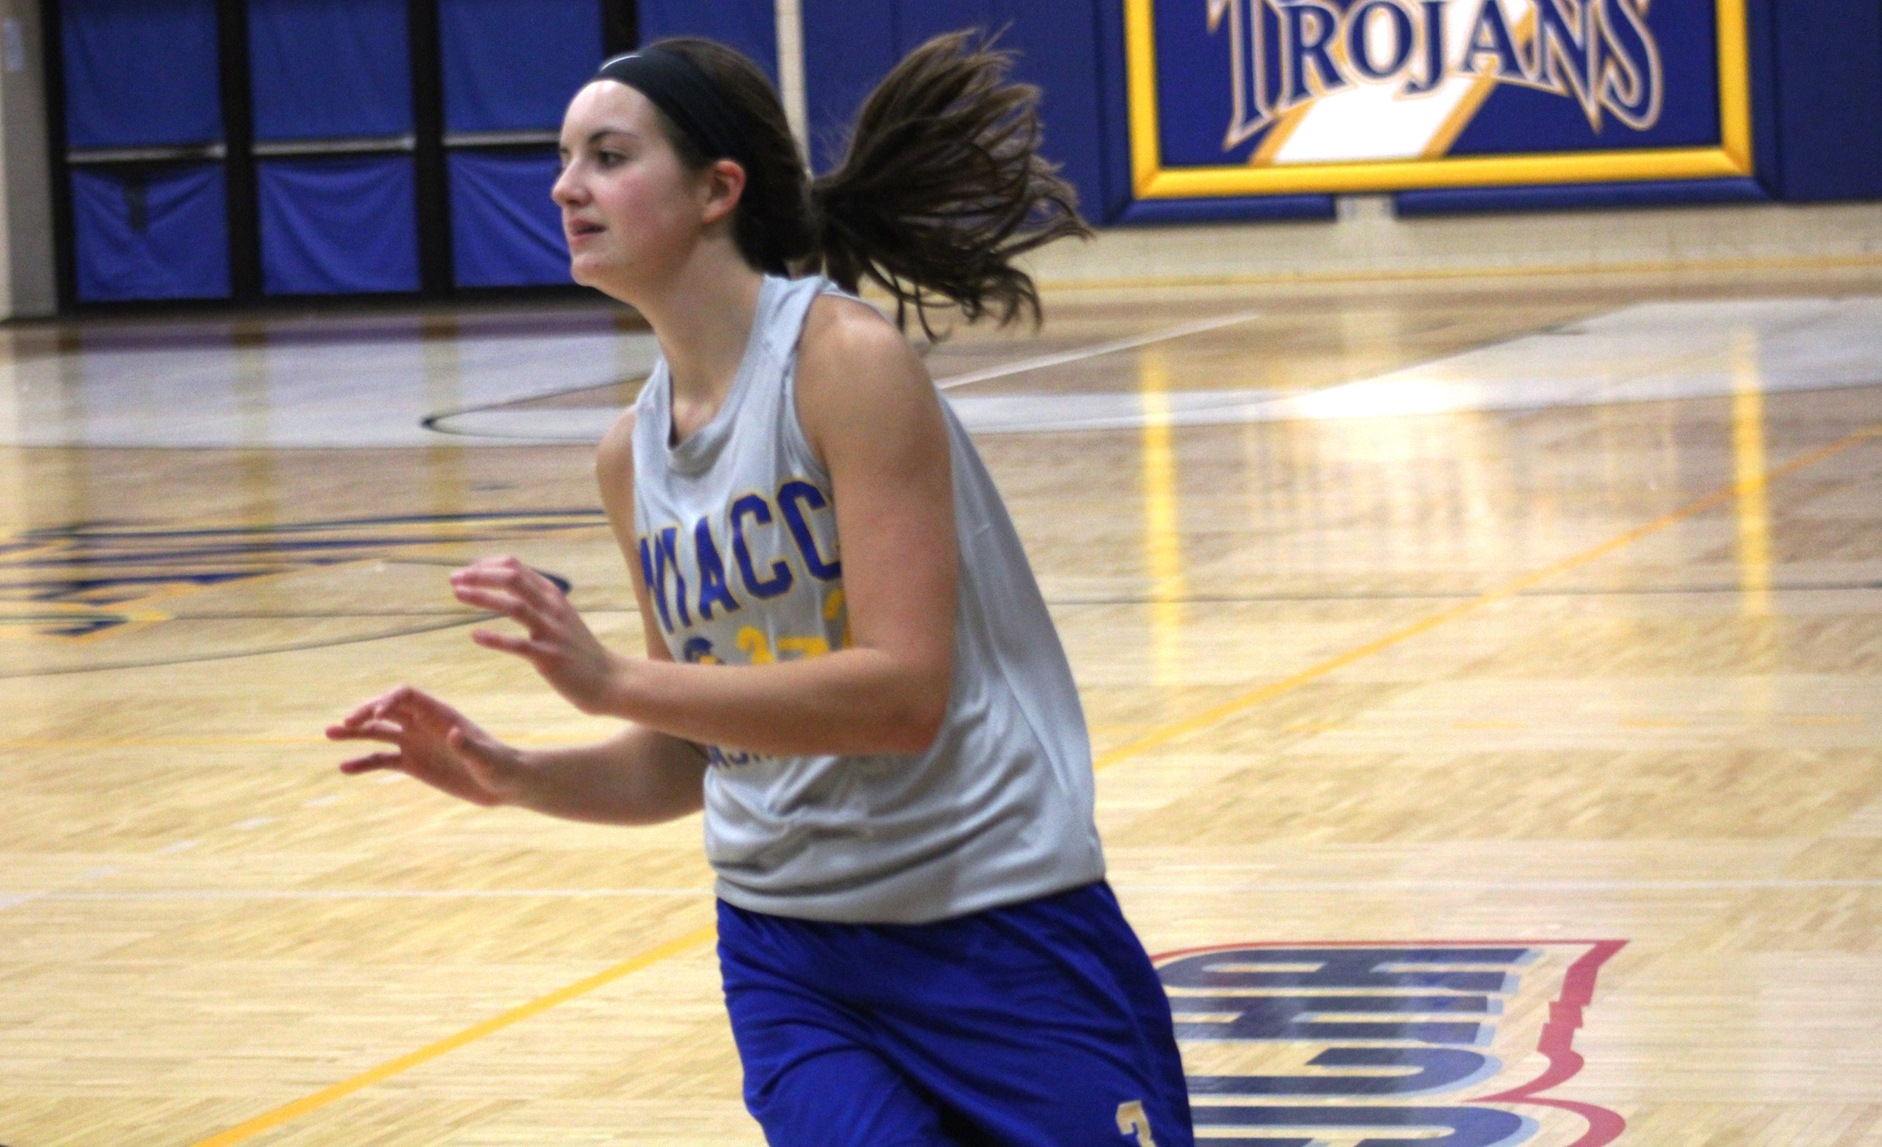 NIACC freshman Mandy Willems looks to catch a pass in a recent practice.